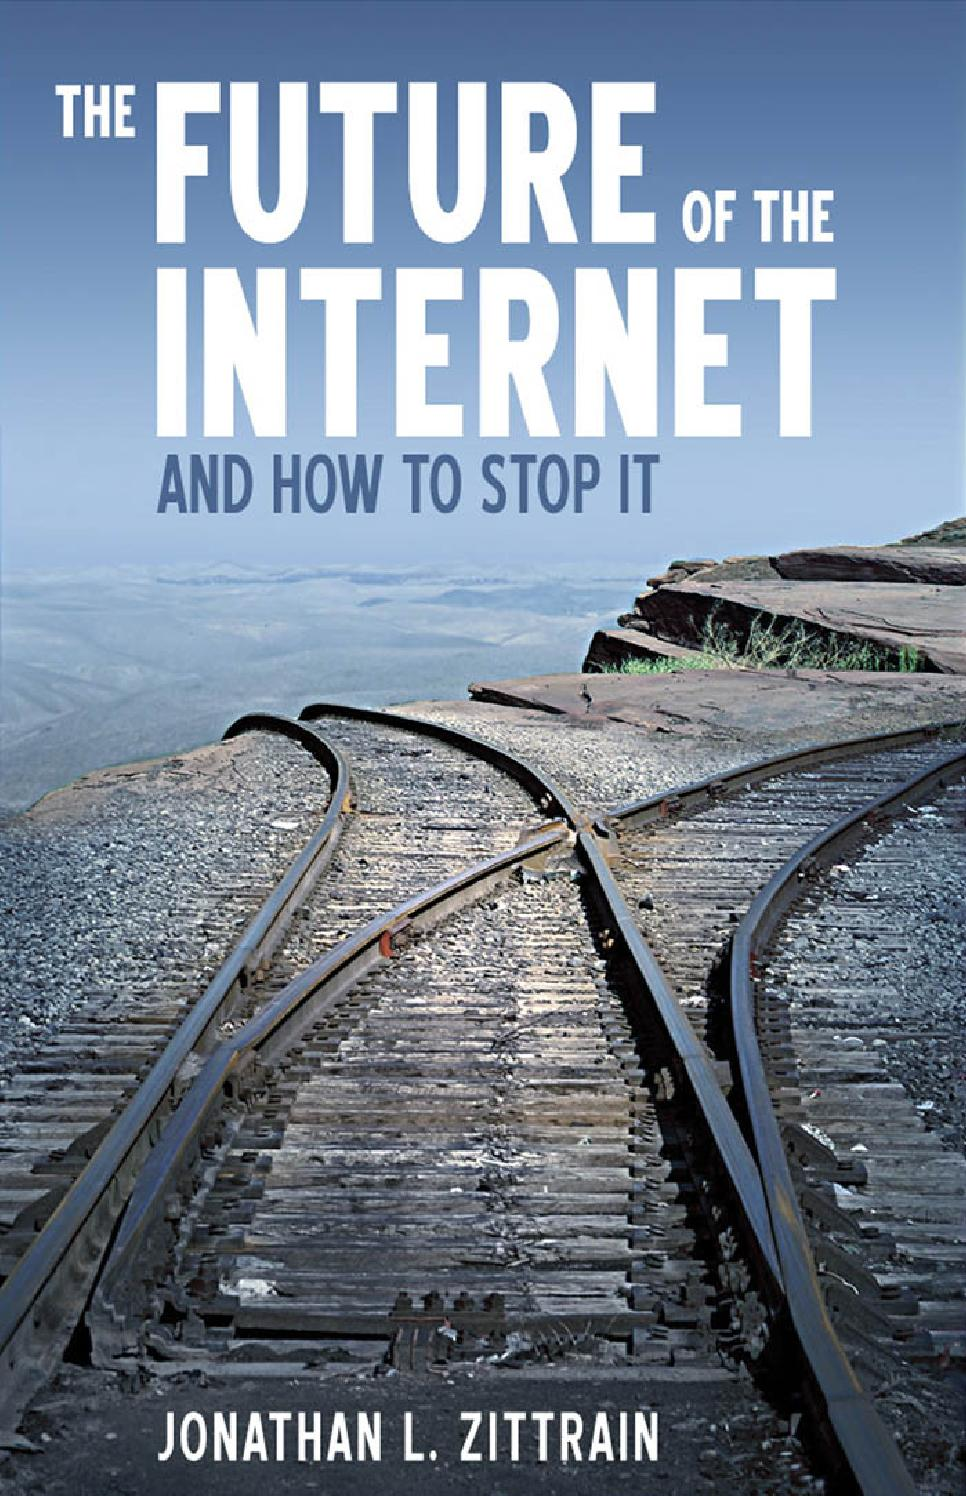 The Future Of The Internet And How To Stop It By Flexibooks Issuu - De Splinter Drachten